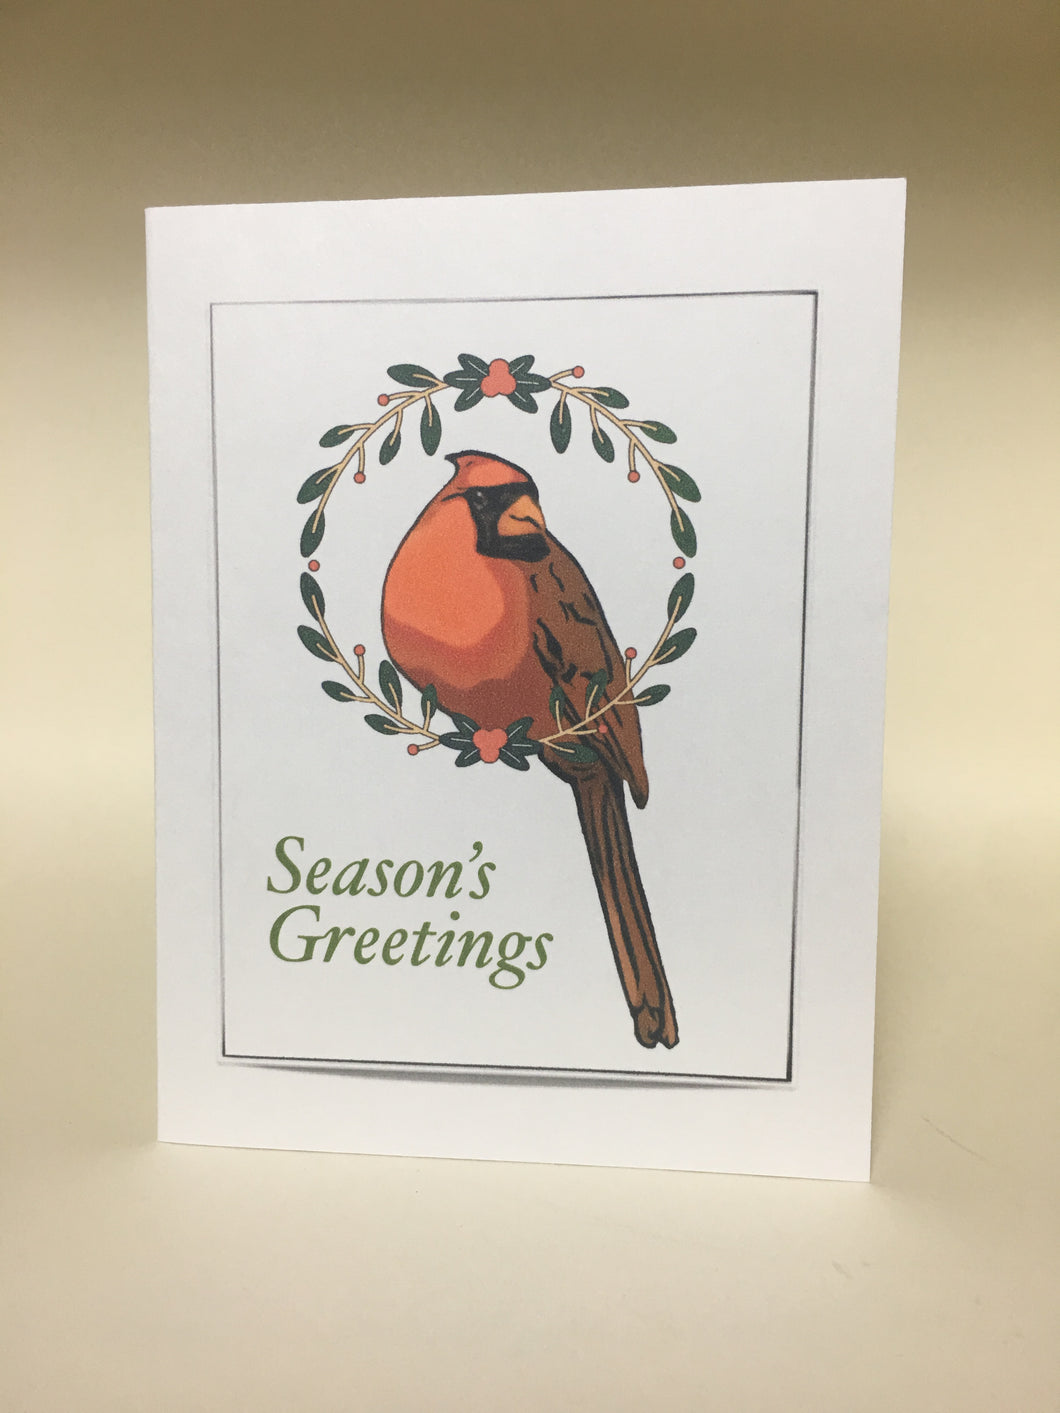 Cardinal Christmas Greeting Cards, 4 Pack, Cardinal Gift, Seasons Greetings, Thinking of You, Miss You, Holiday Card #C25